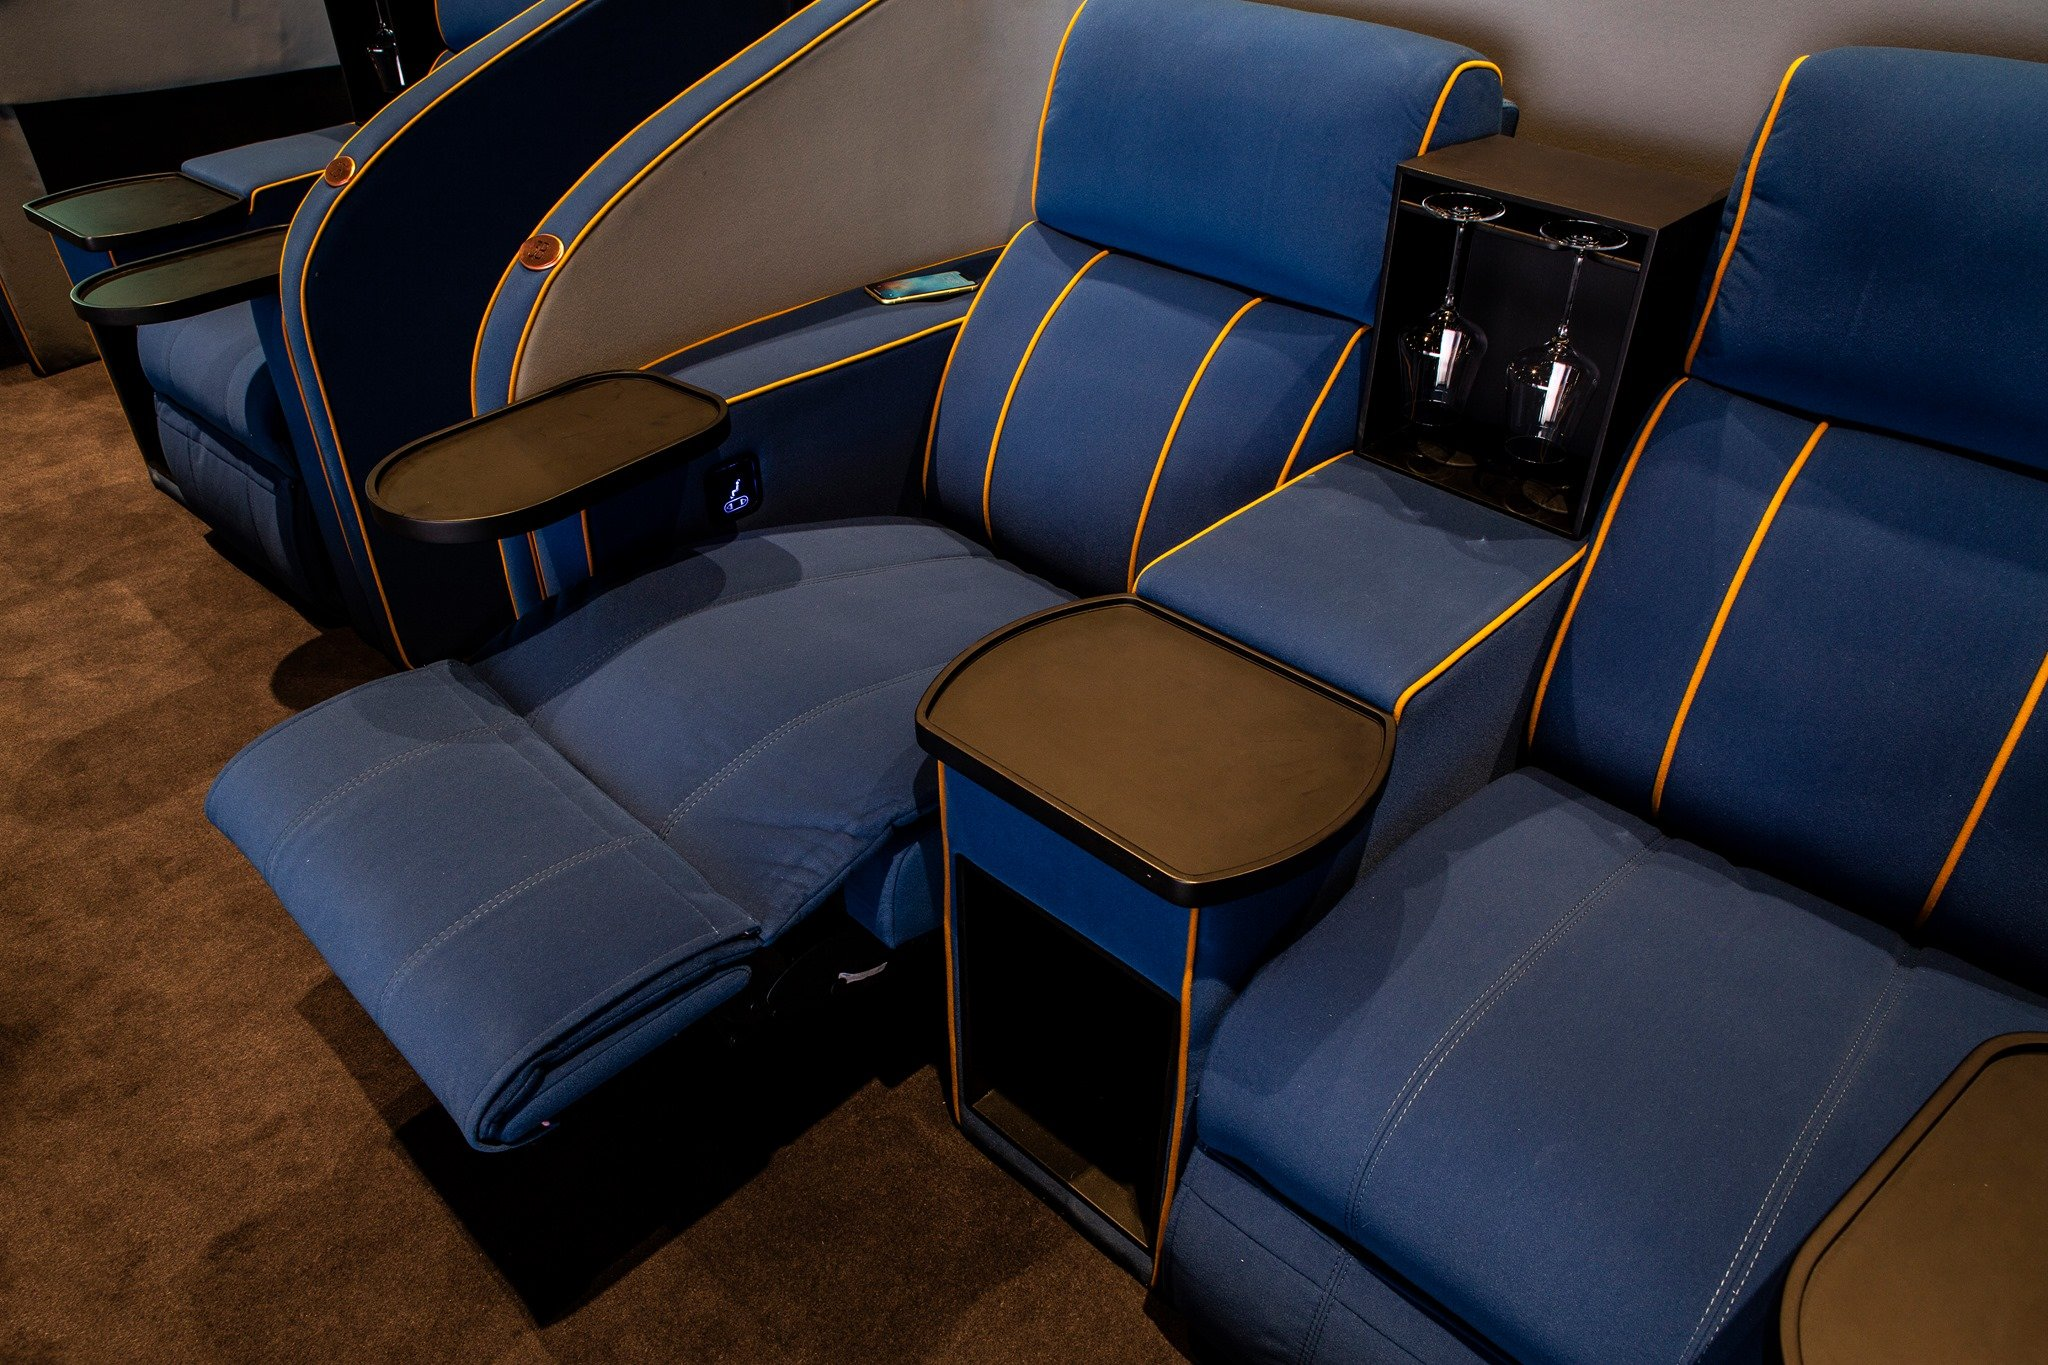 A Swiss Movie Theater Adds Double Beds To Relax In While